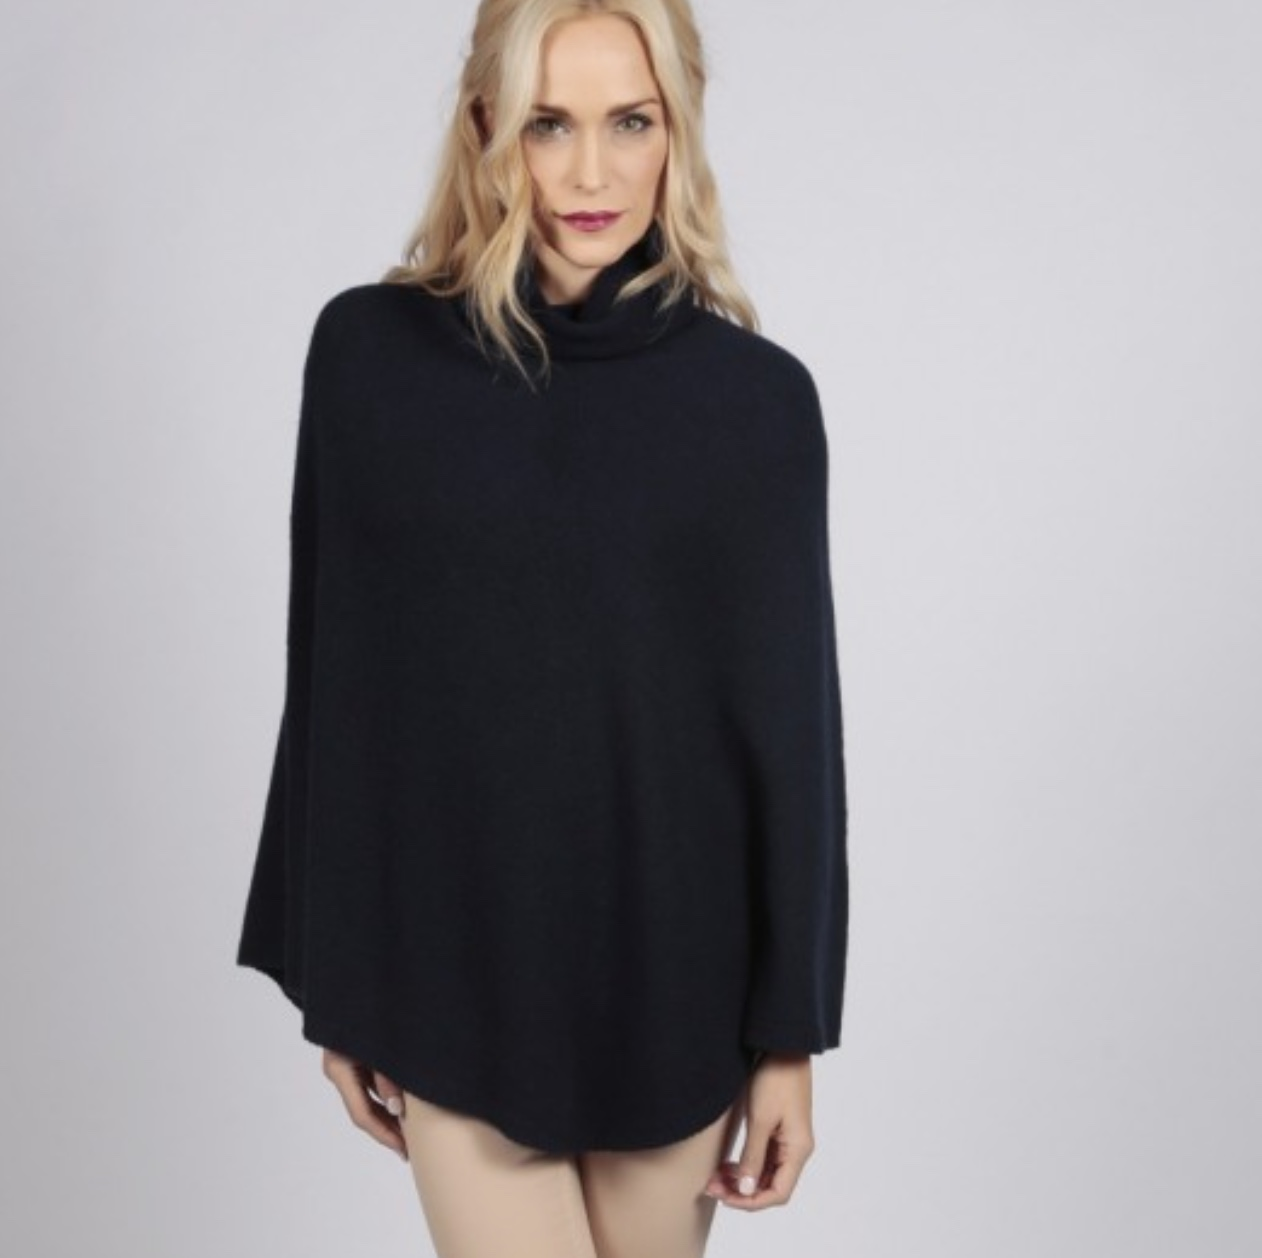 italy in cashmere navy blue pure cashmere roll neck poncho cape